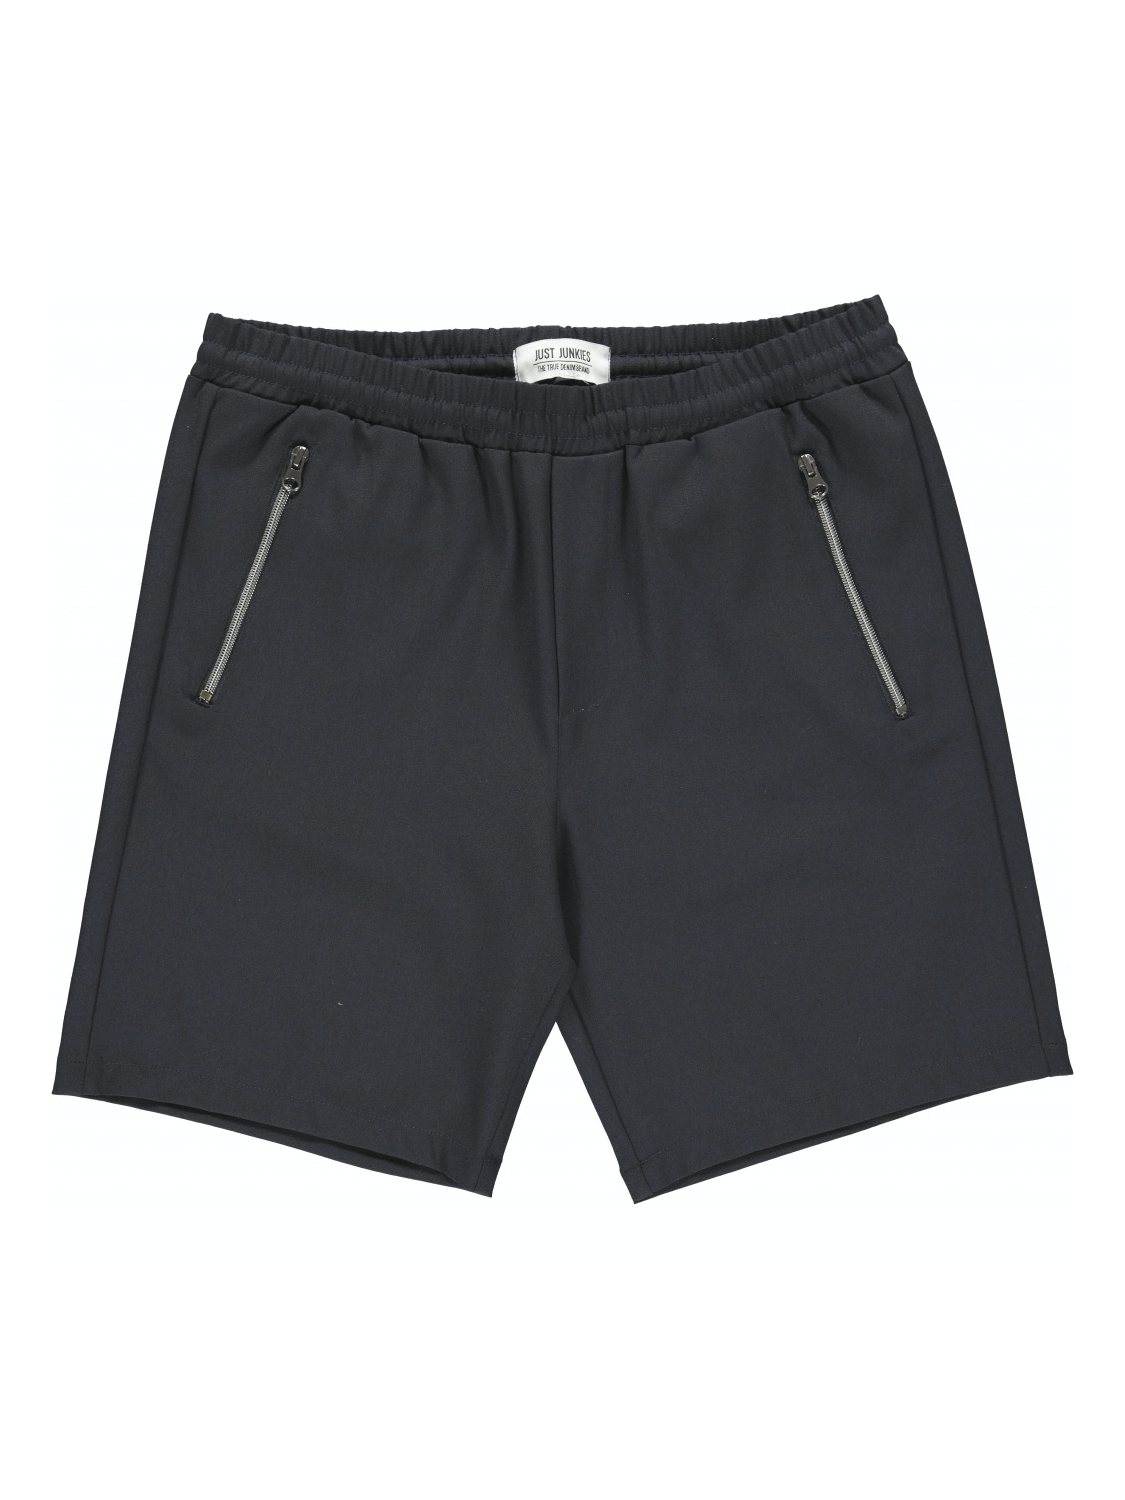 Just Junkies - shorts Flex 2.0 navy JJ1688 | GATE 36 Hobro